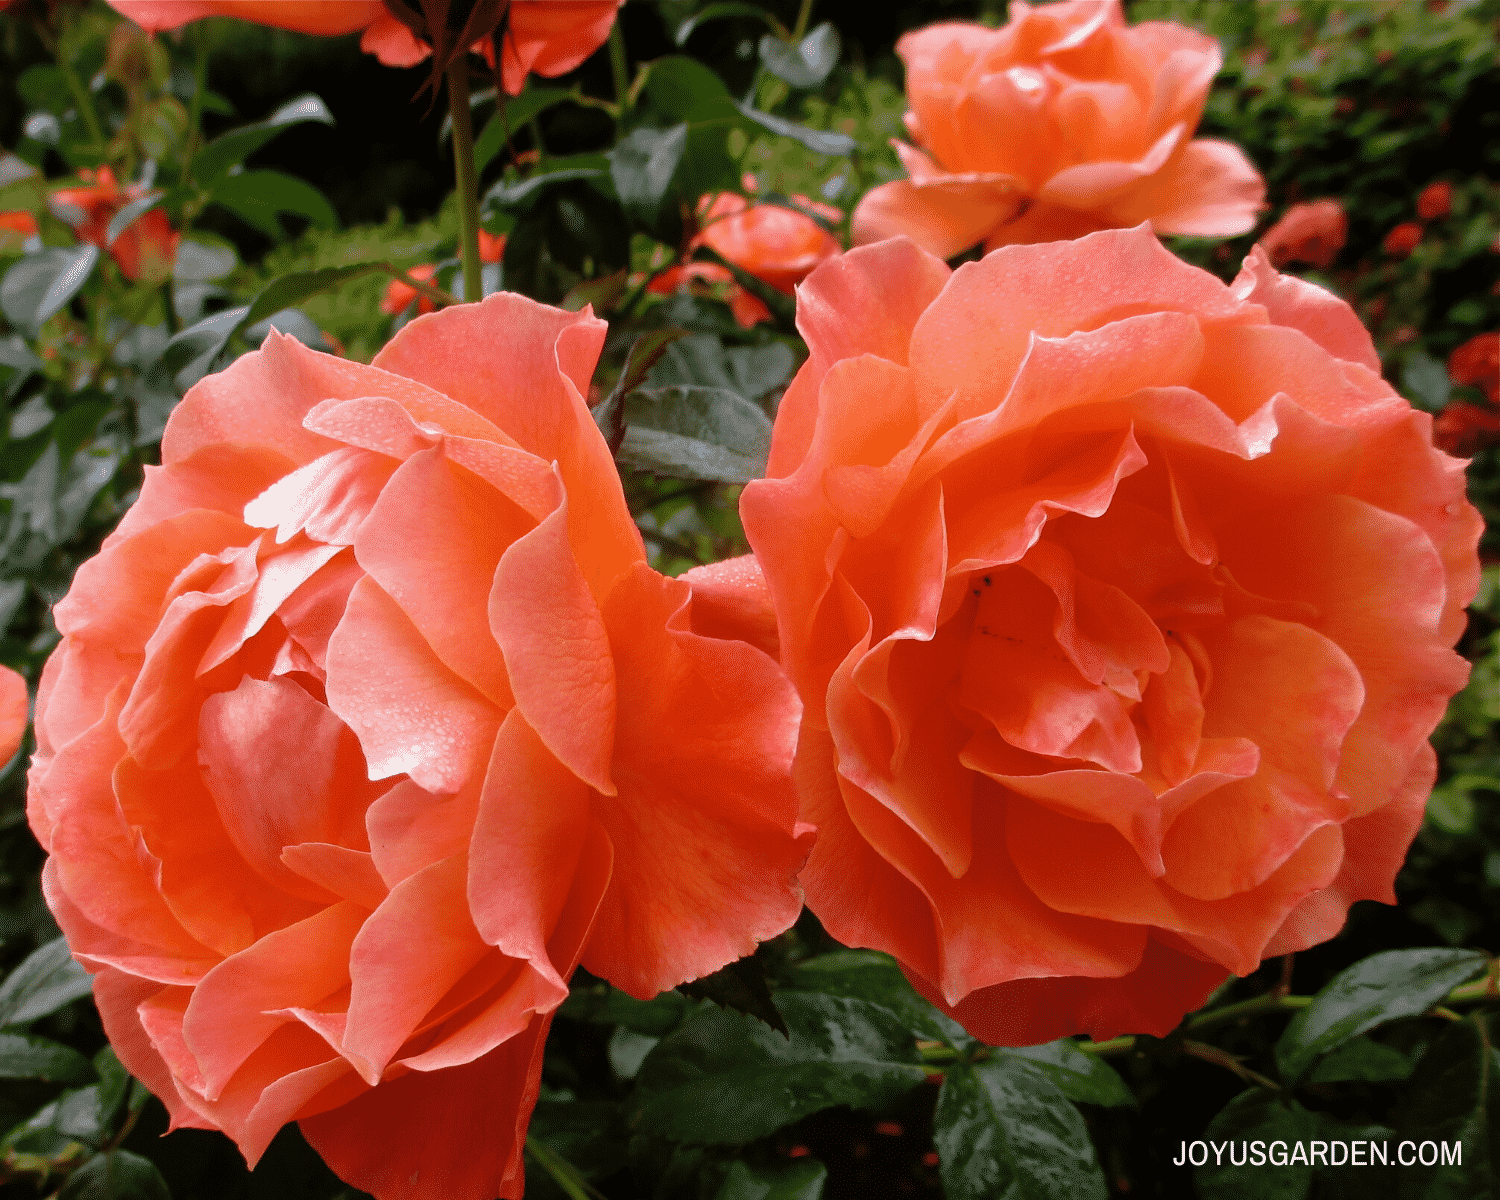 close up of two deep apricot colored rose flowers